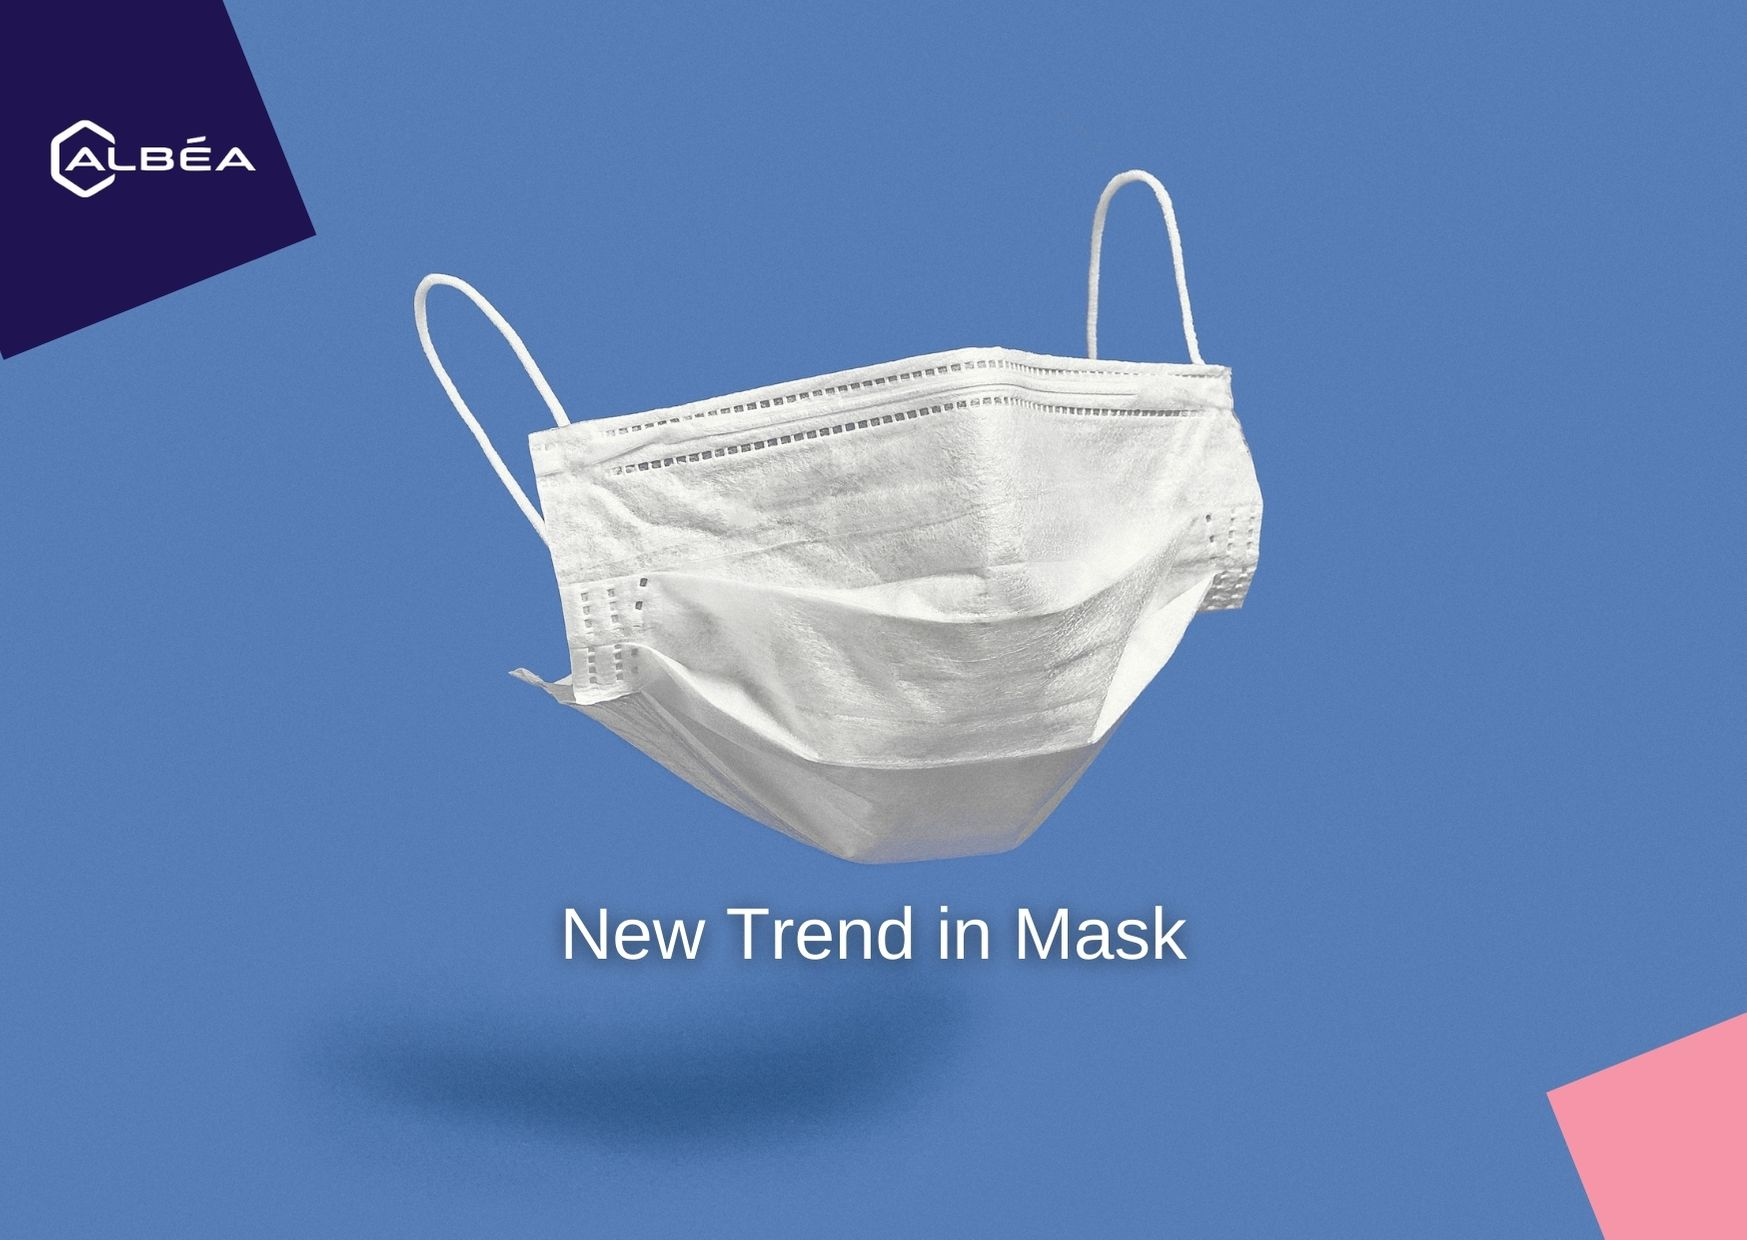 New Trend in Mask image